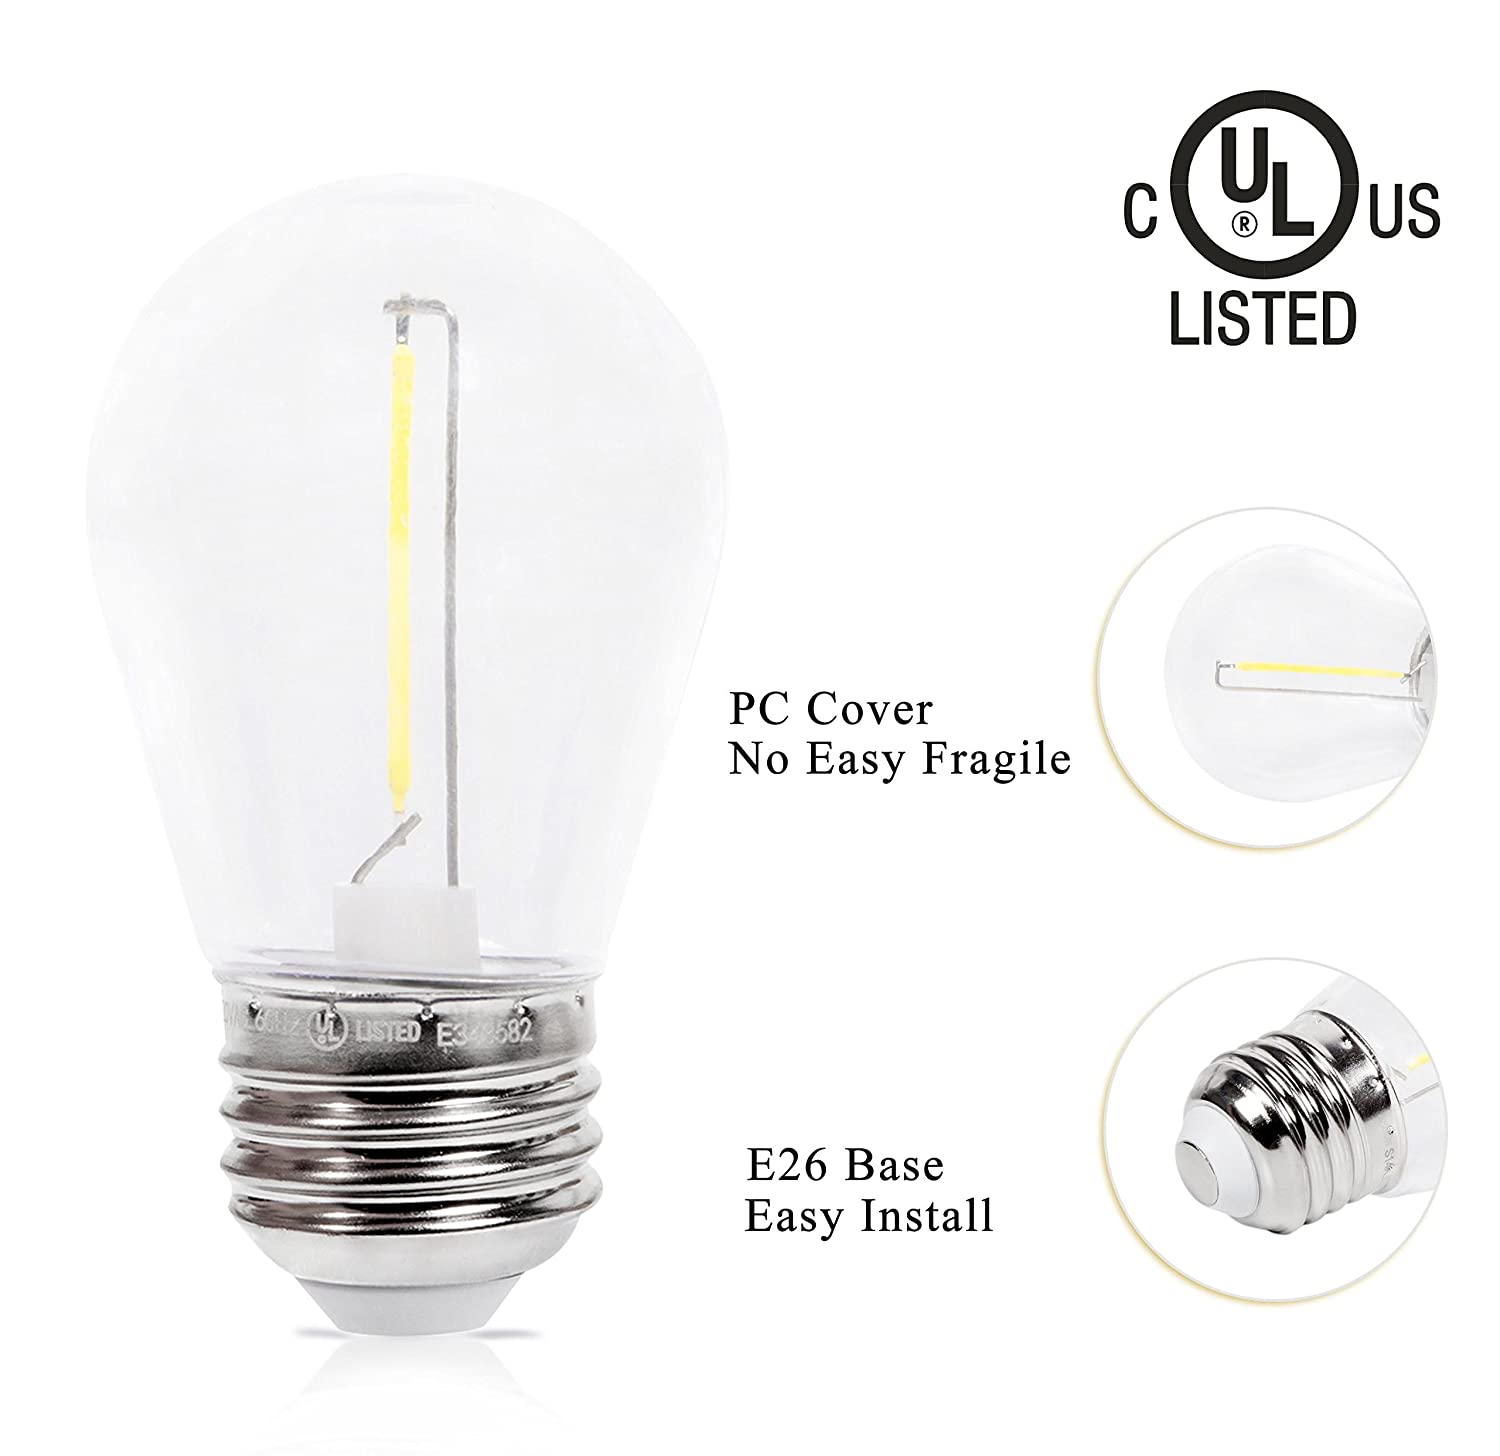 S14-1W-ND-G-8P 8 Pack UL Listed Non-Dimmable 1W Green Colored Decorative Bulbs of String Light Strands E26 Base Without String Strands and Sockets EFFOE S14 LED Bulbs